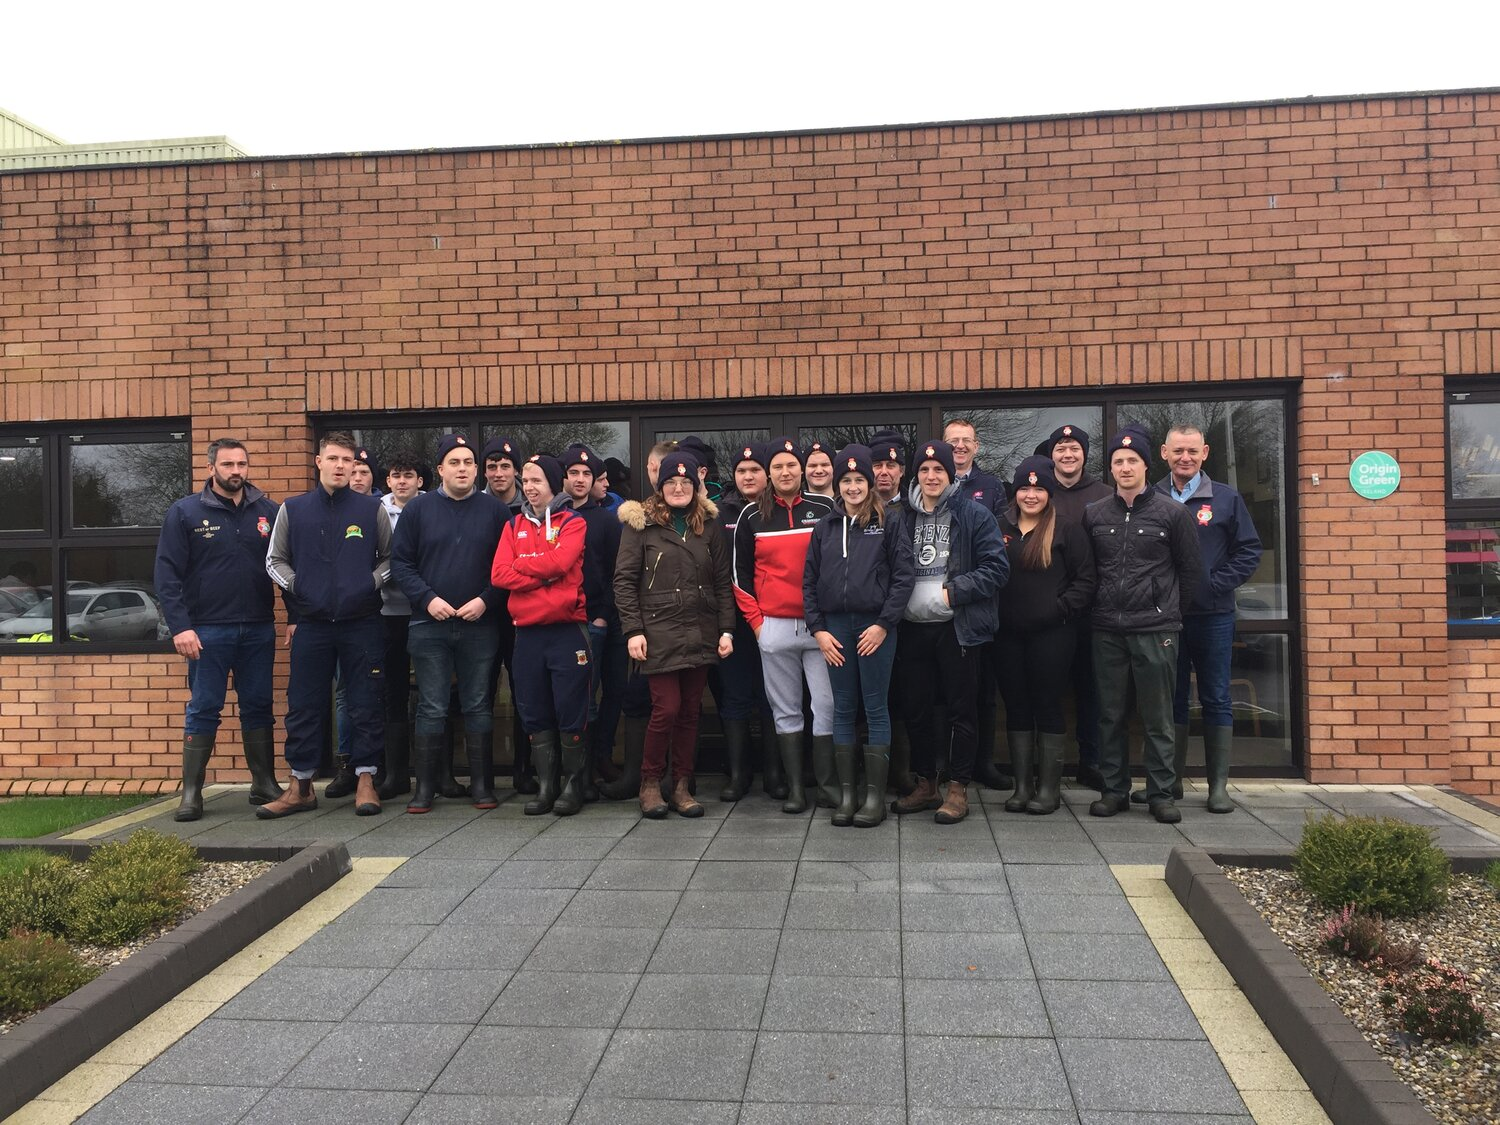 A stock judging competition and tour of the ABP Nenagh beef processing facilities took place with students from Gurteen Agricutural College, Co. Tipperary in November of 2019. The students were tasked with estimating the carcass weight, conformation grade and fat score of the 5 Hereford cattle on display. Putting into practice the tips provided by ABP Nenagh procurement manager Liam Chadwick on how best to select an animal for slaughter. Students were also given access to the chill room to compare the different conformation grades and levels of fat on the 5 carcasses post slaughter. A real highlight of the day was getting to see the boning out of a carcass into the various primal cuts of beef.